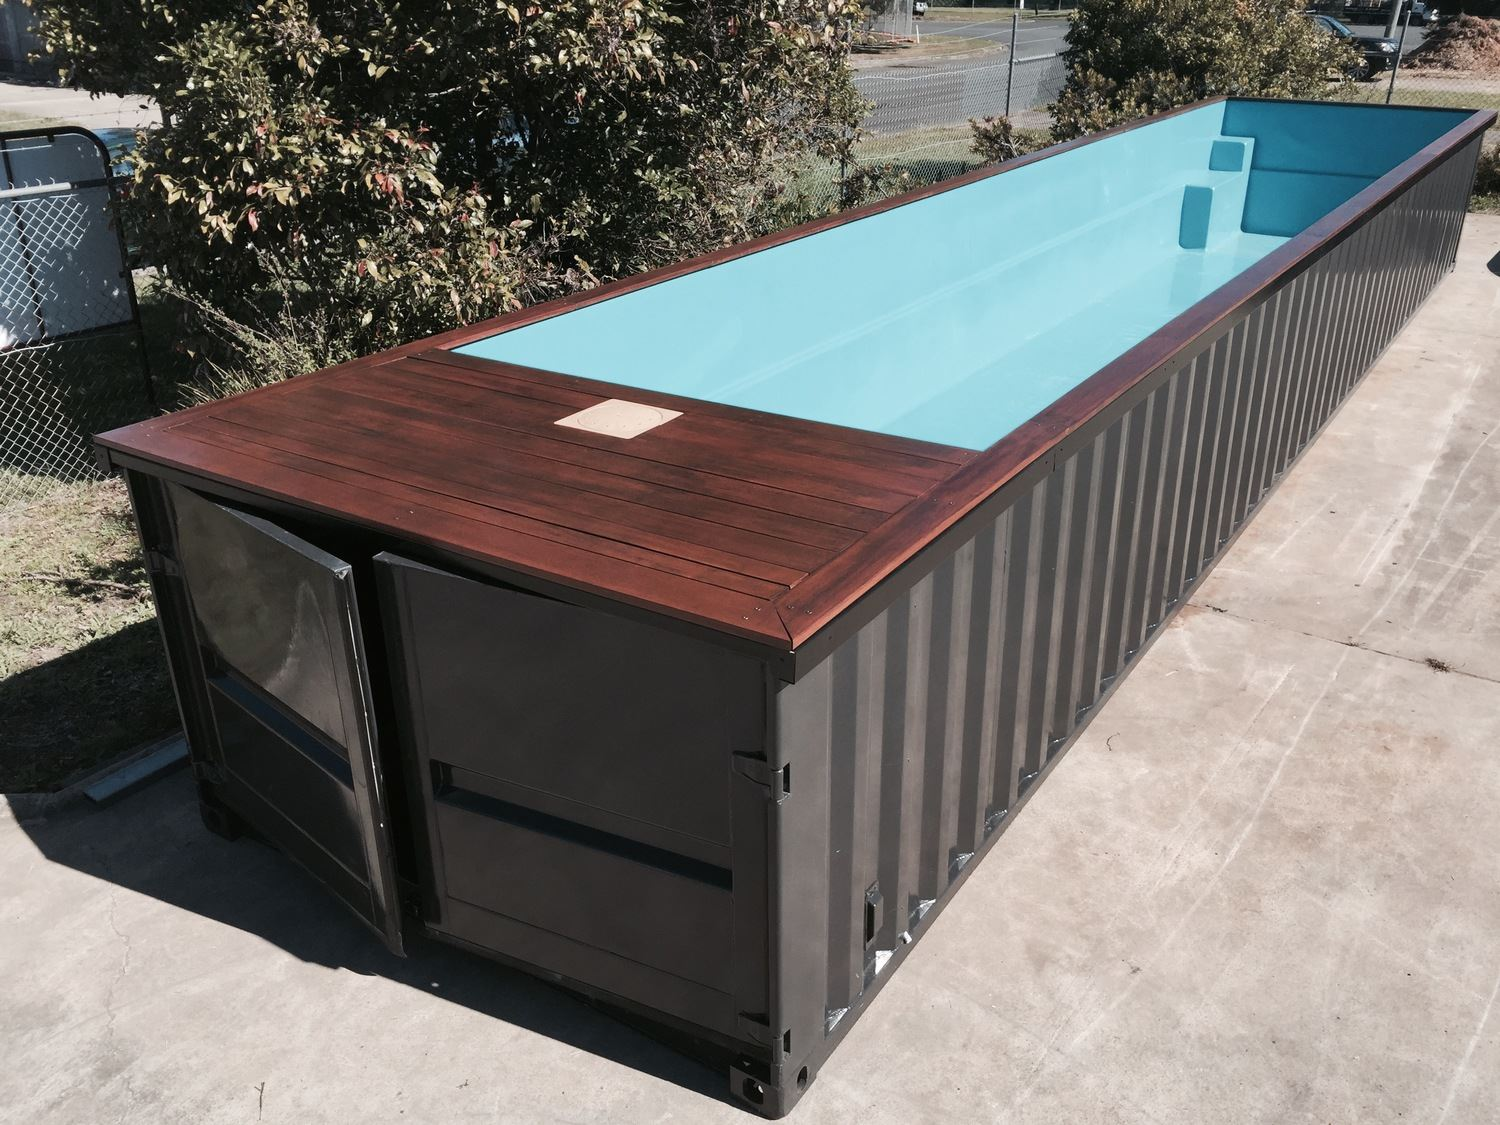 Ouvrons le champ des possibles containers piscine - Piscina container ...